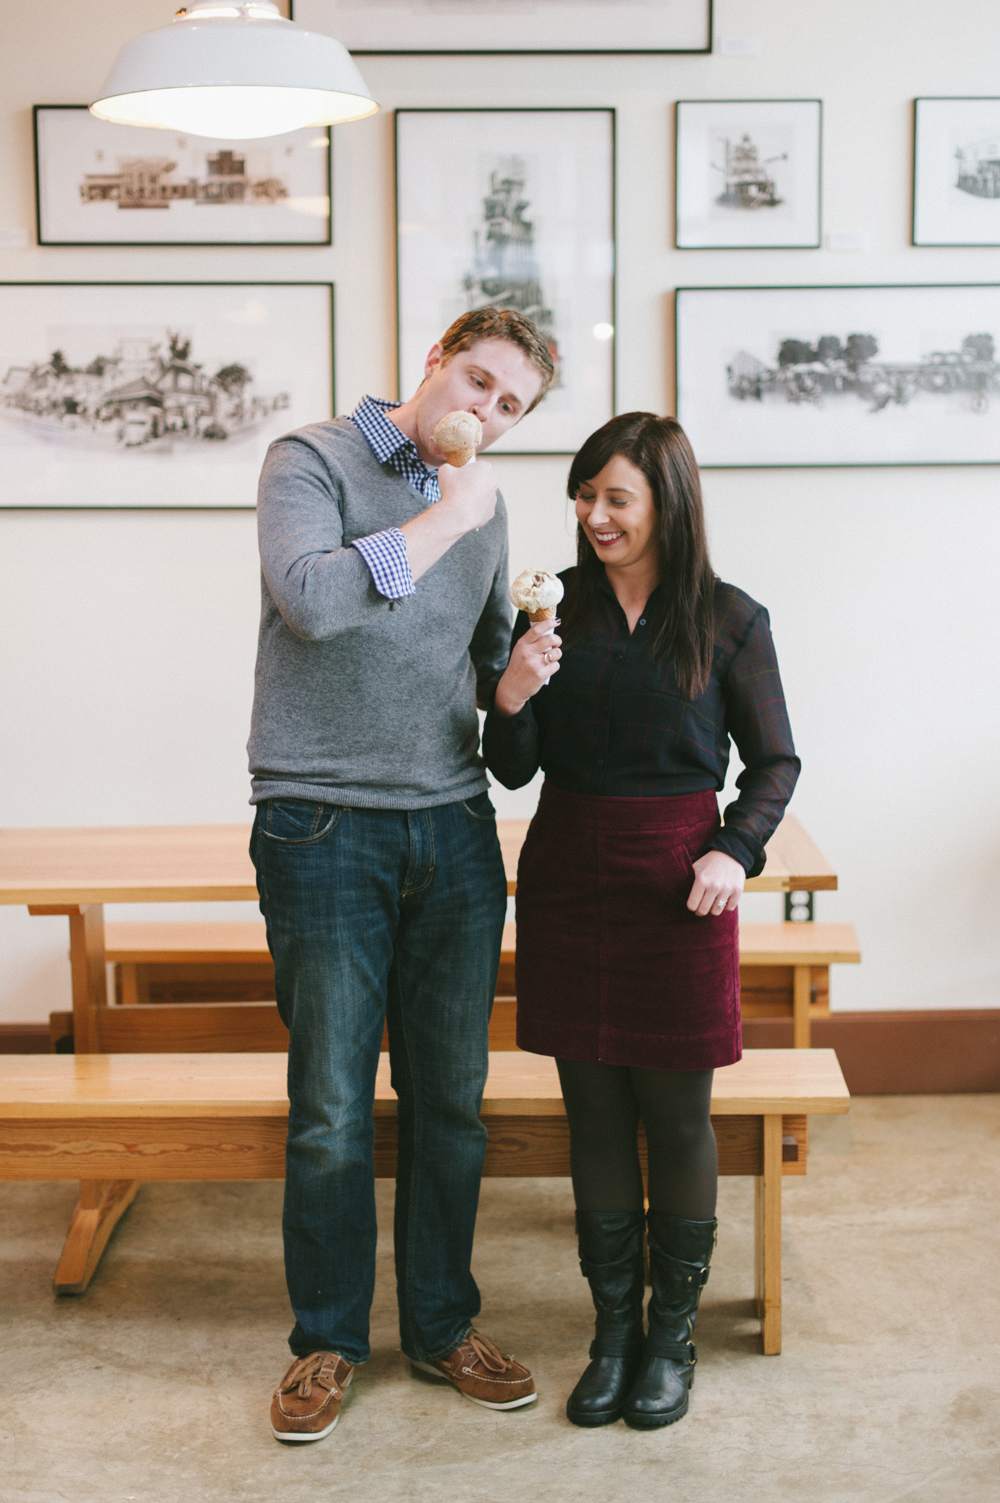 Experiencing the wonderful flavors at Salt N Straw during this Portland engagement session. Photography by Briana Morrison